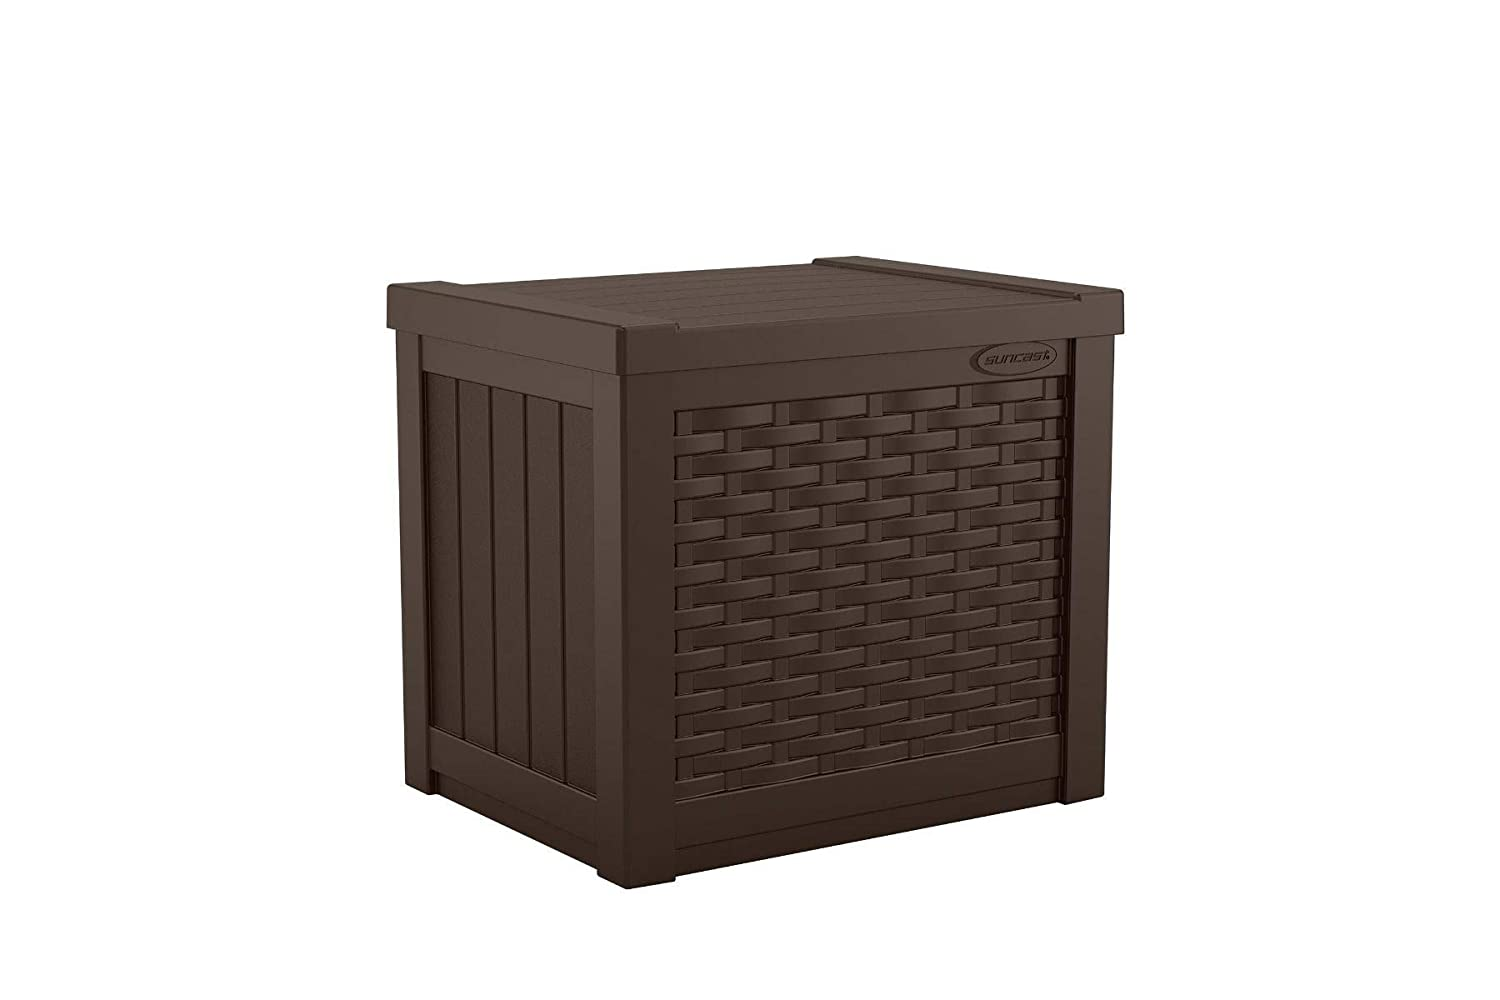 Suncast 22-Gallon Small Deck Box - Lightweight Resin Outdoor Storage Deck Box and Seat for Patio Cushions, Gardening Tools and Toys - Java Brown